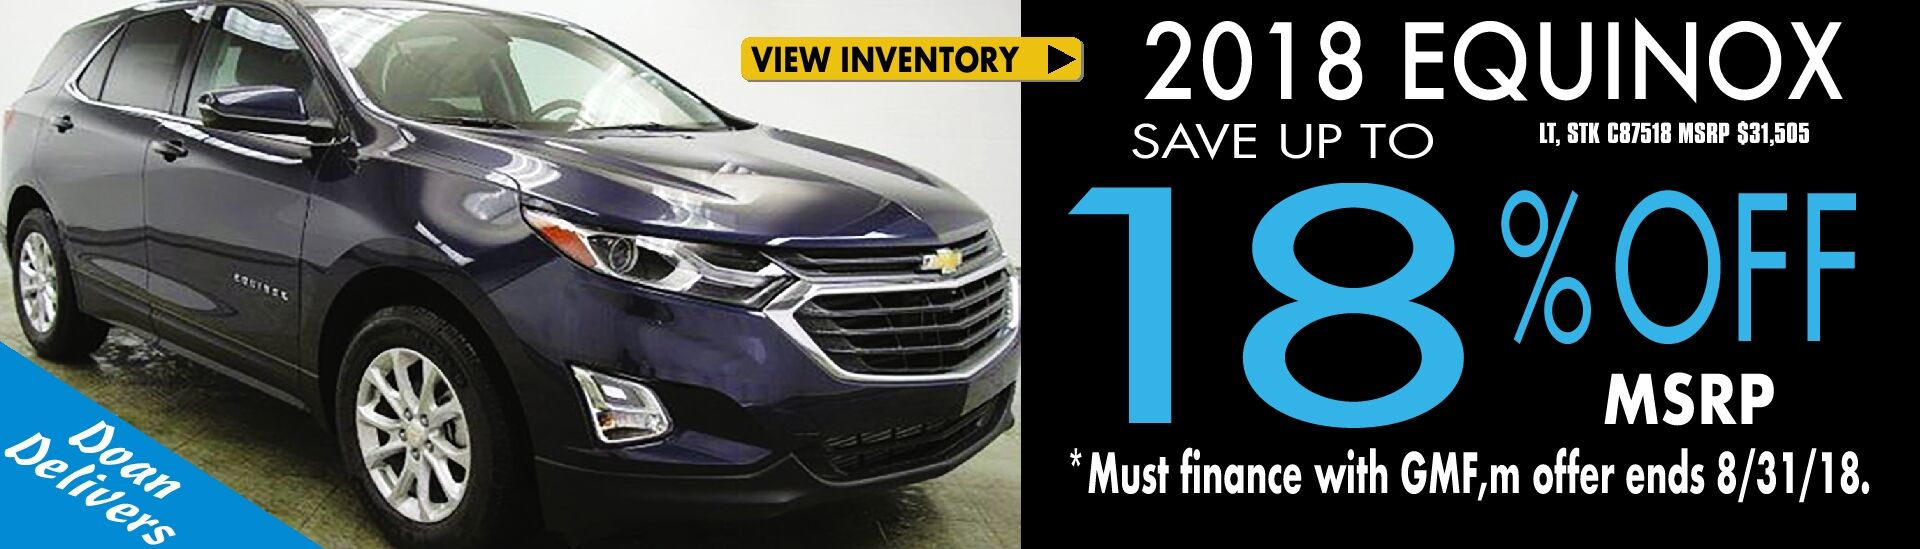 Up to 18% Off MSRP on '18 Equinox